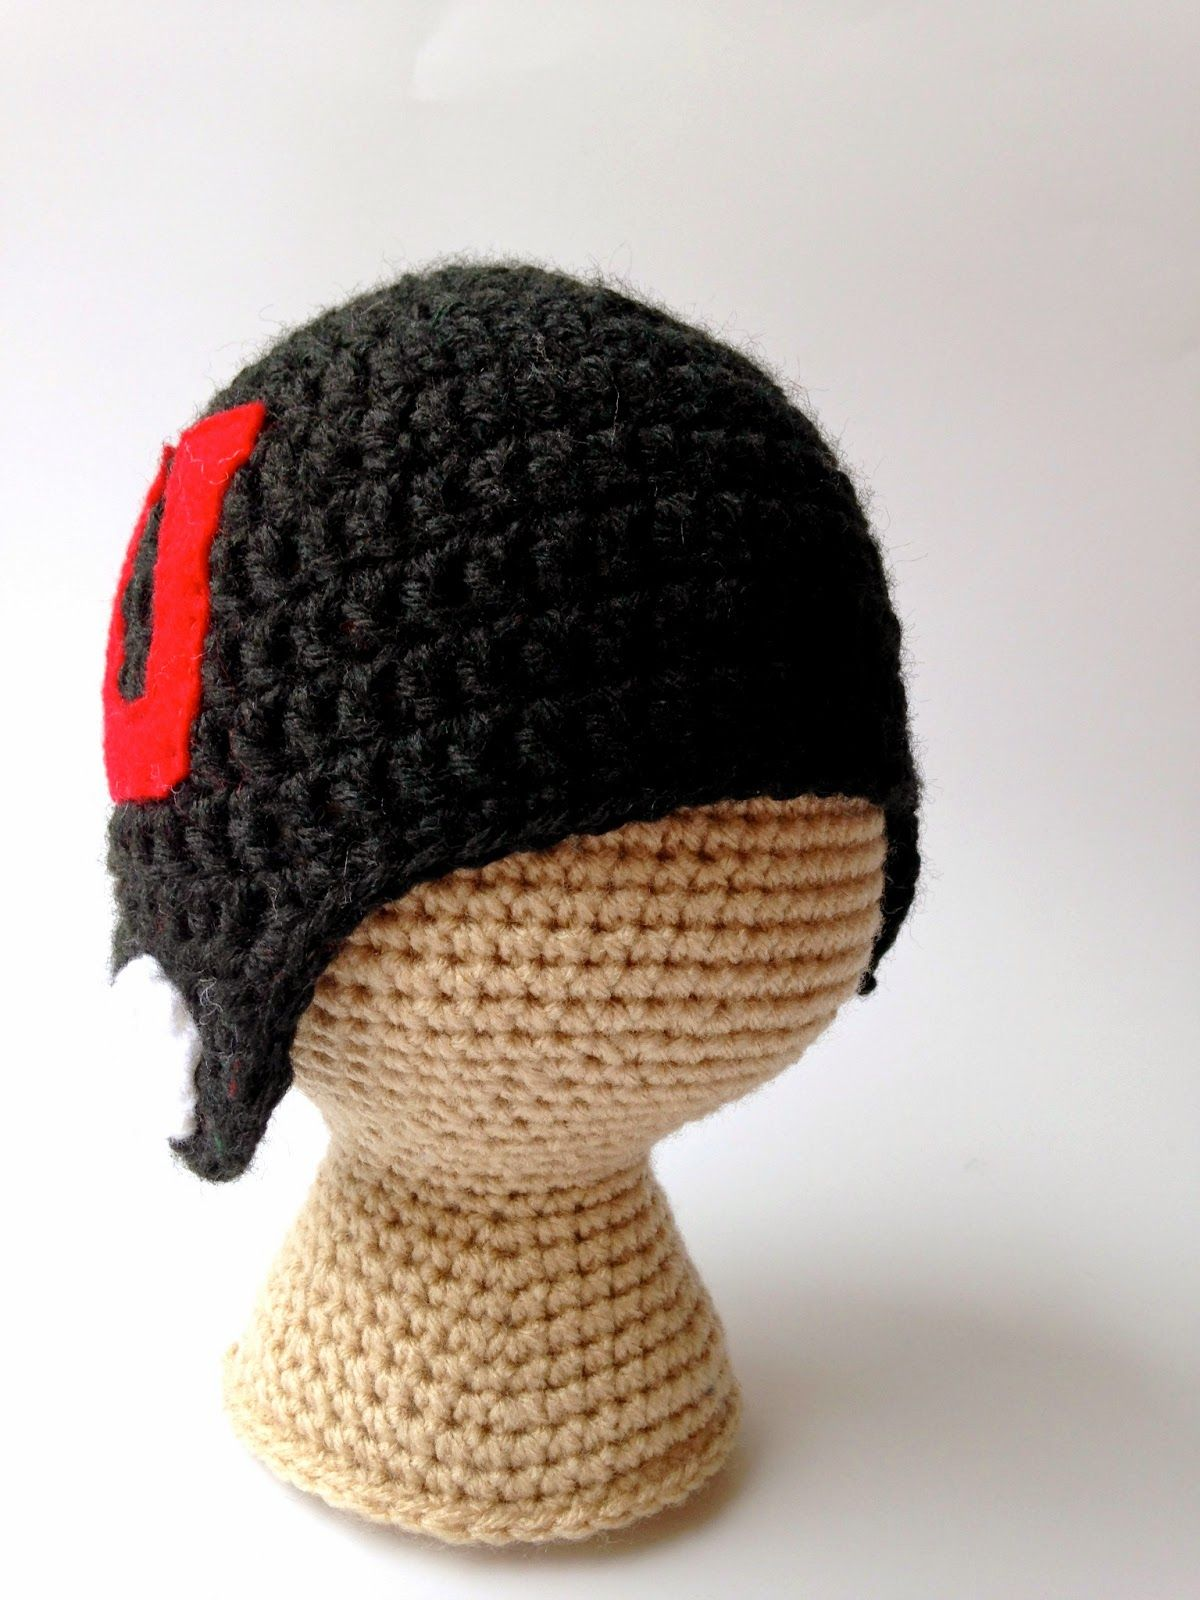 Crochet Football Helmet Hat Pattern Free